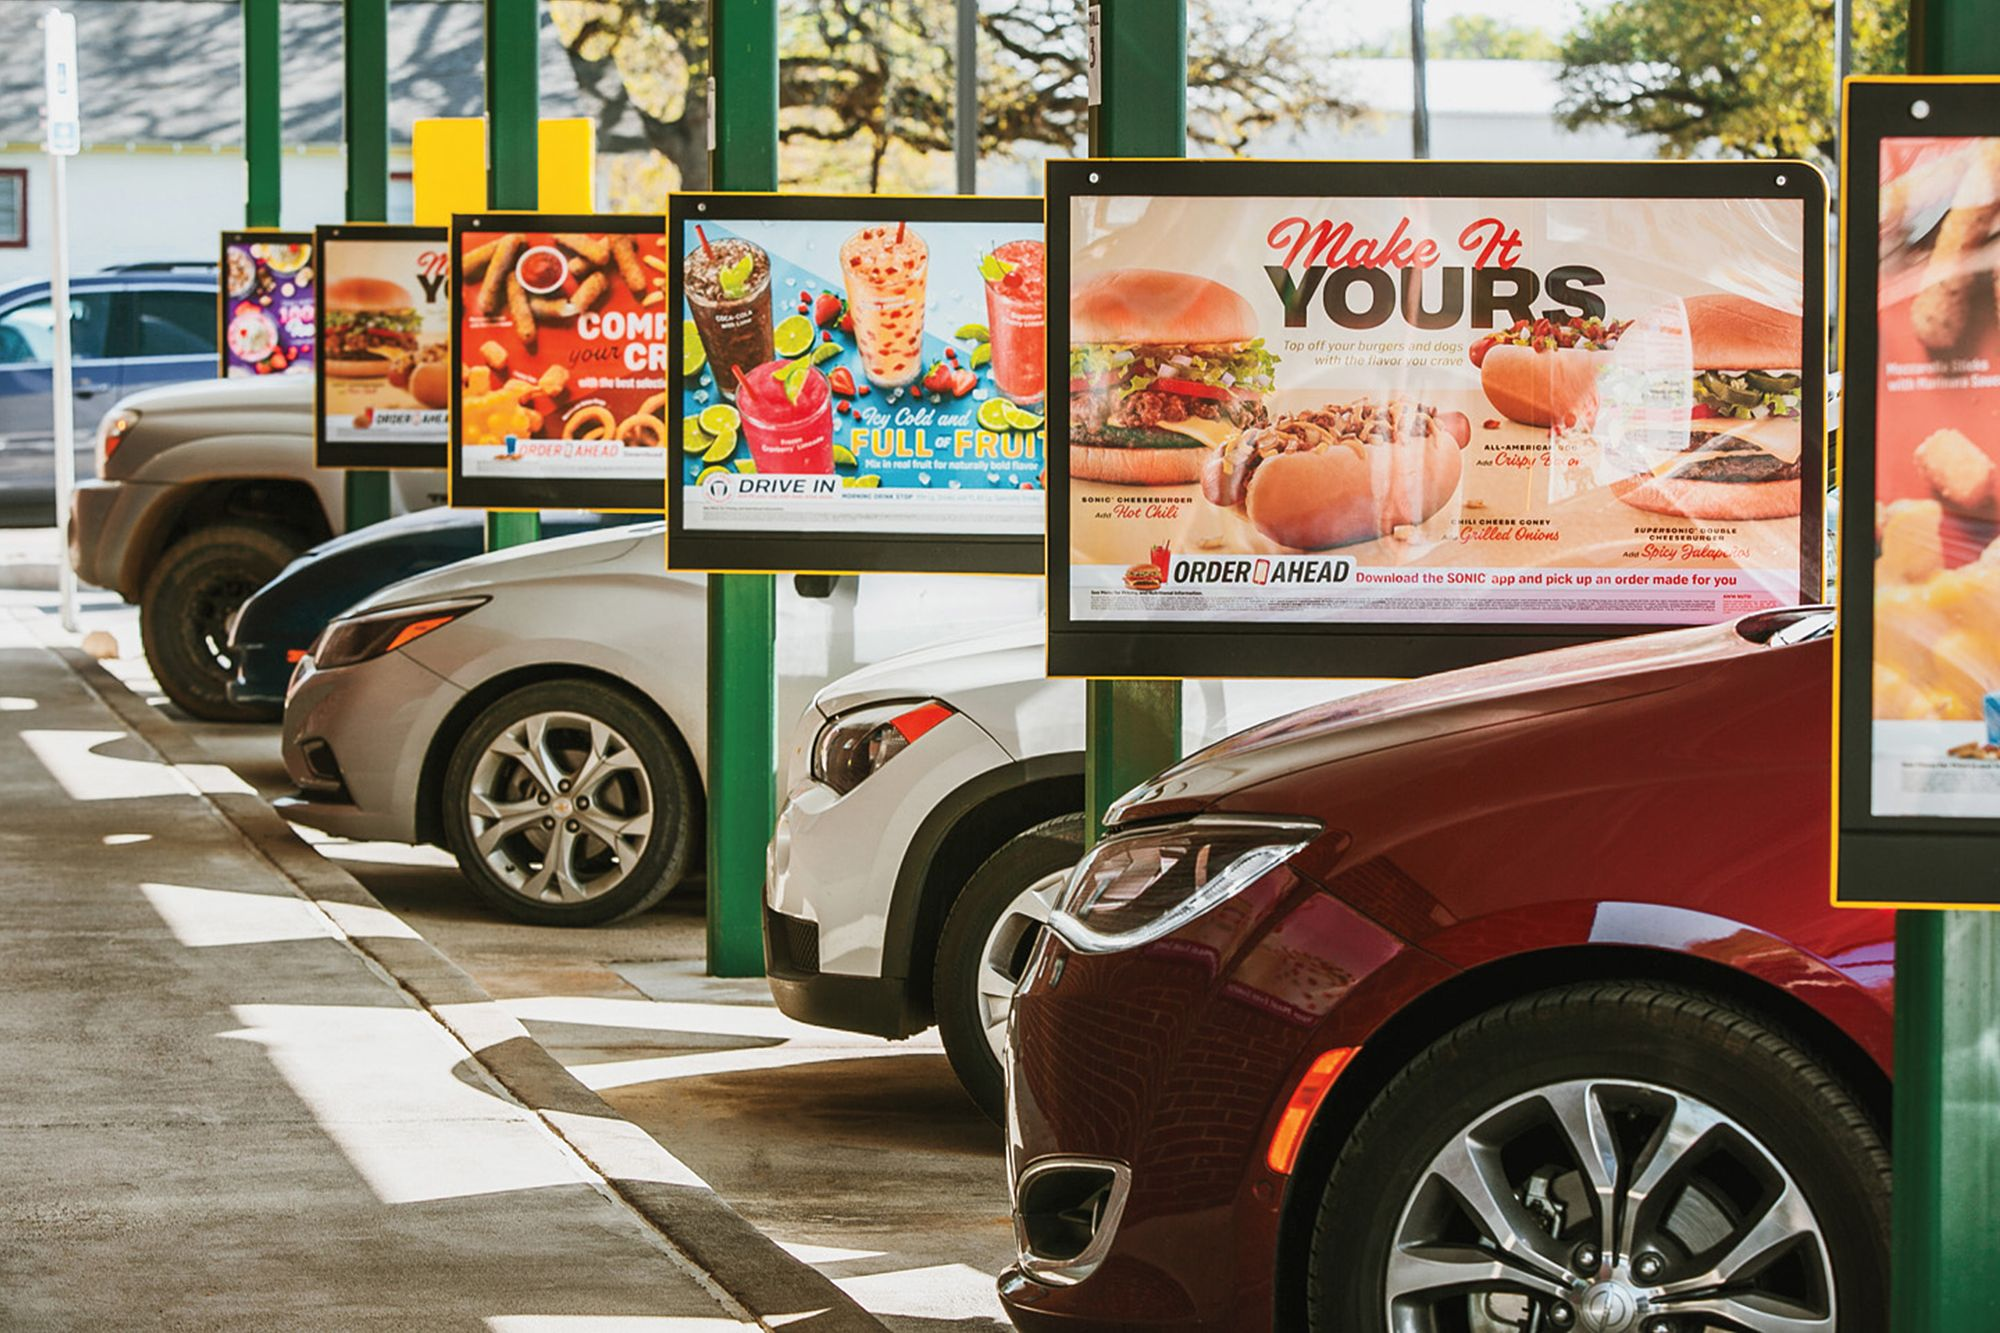 #4 on the Franchise 500: How Sonic Drive-In Uses Artificial Intelligence to Improve Customer Service